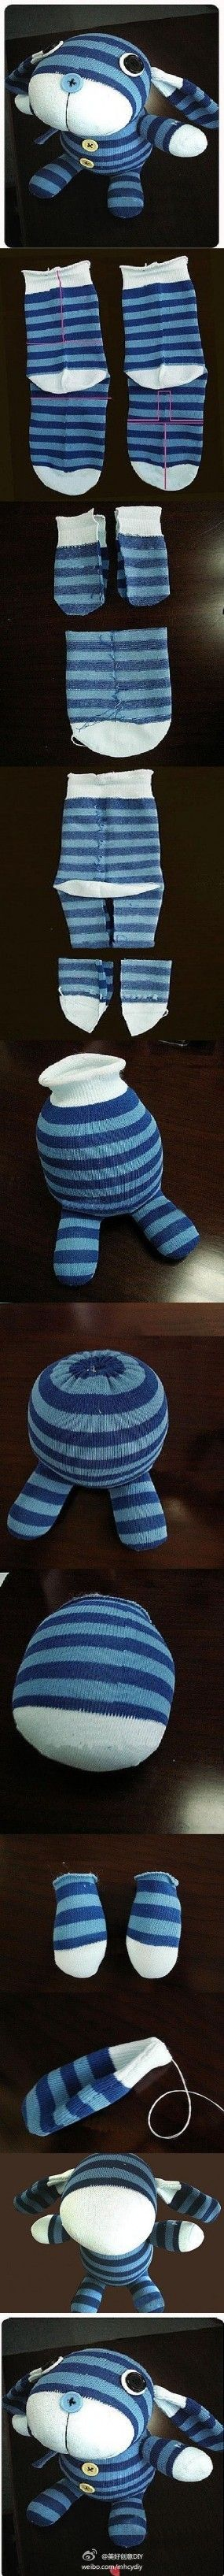 Sock dolls diy